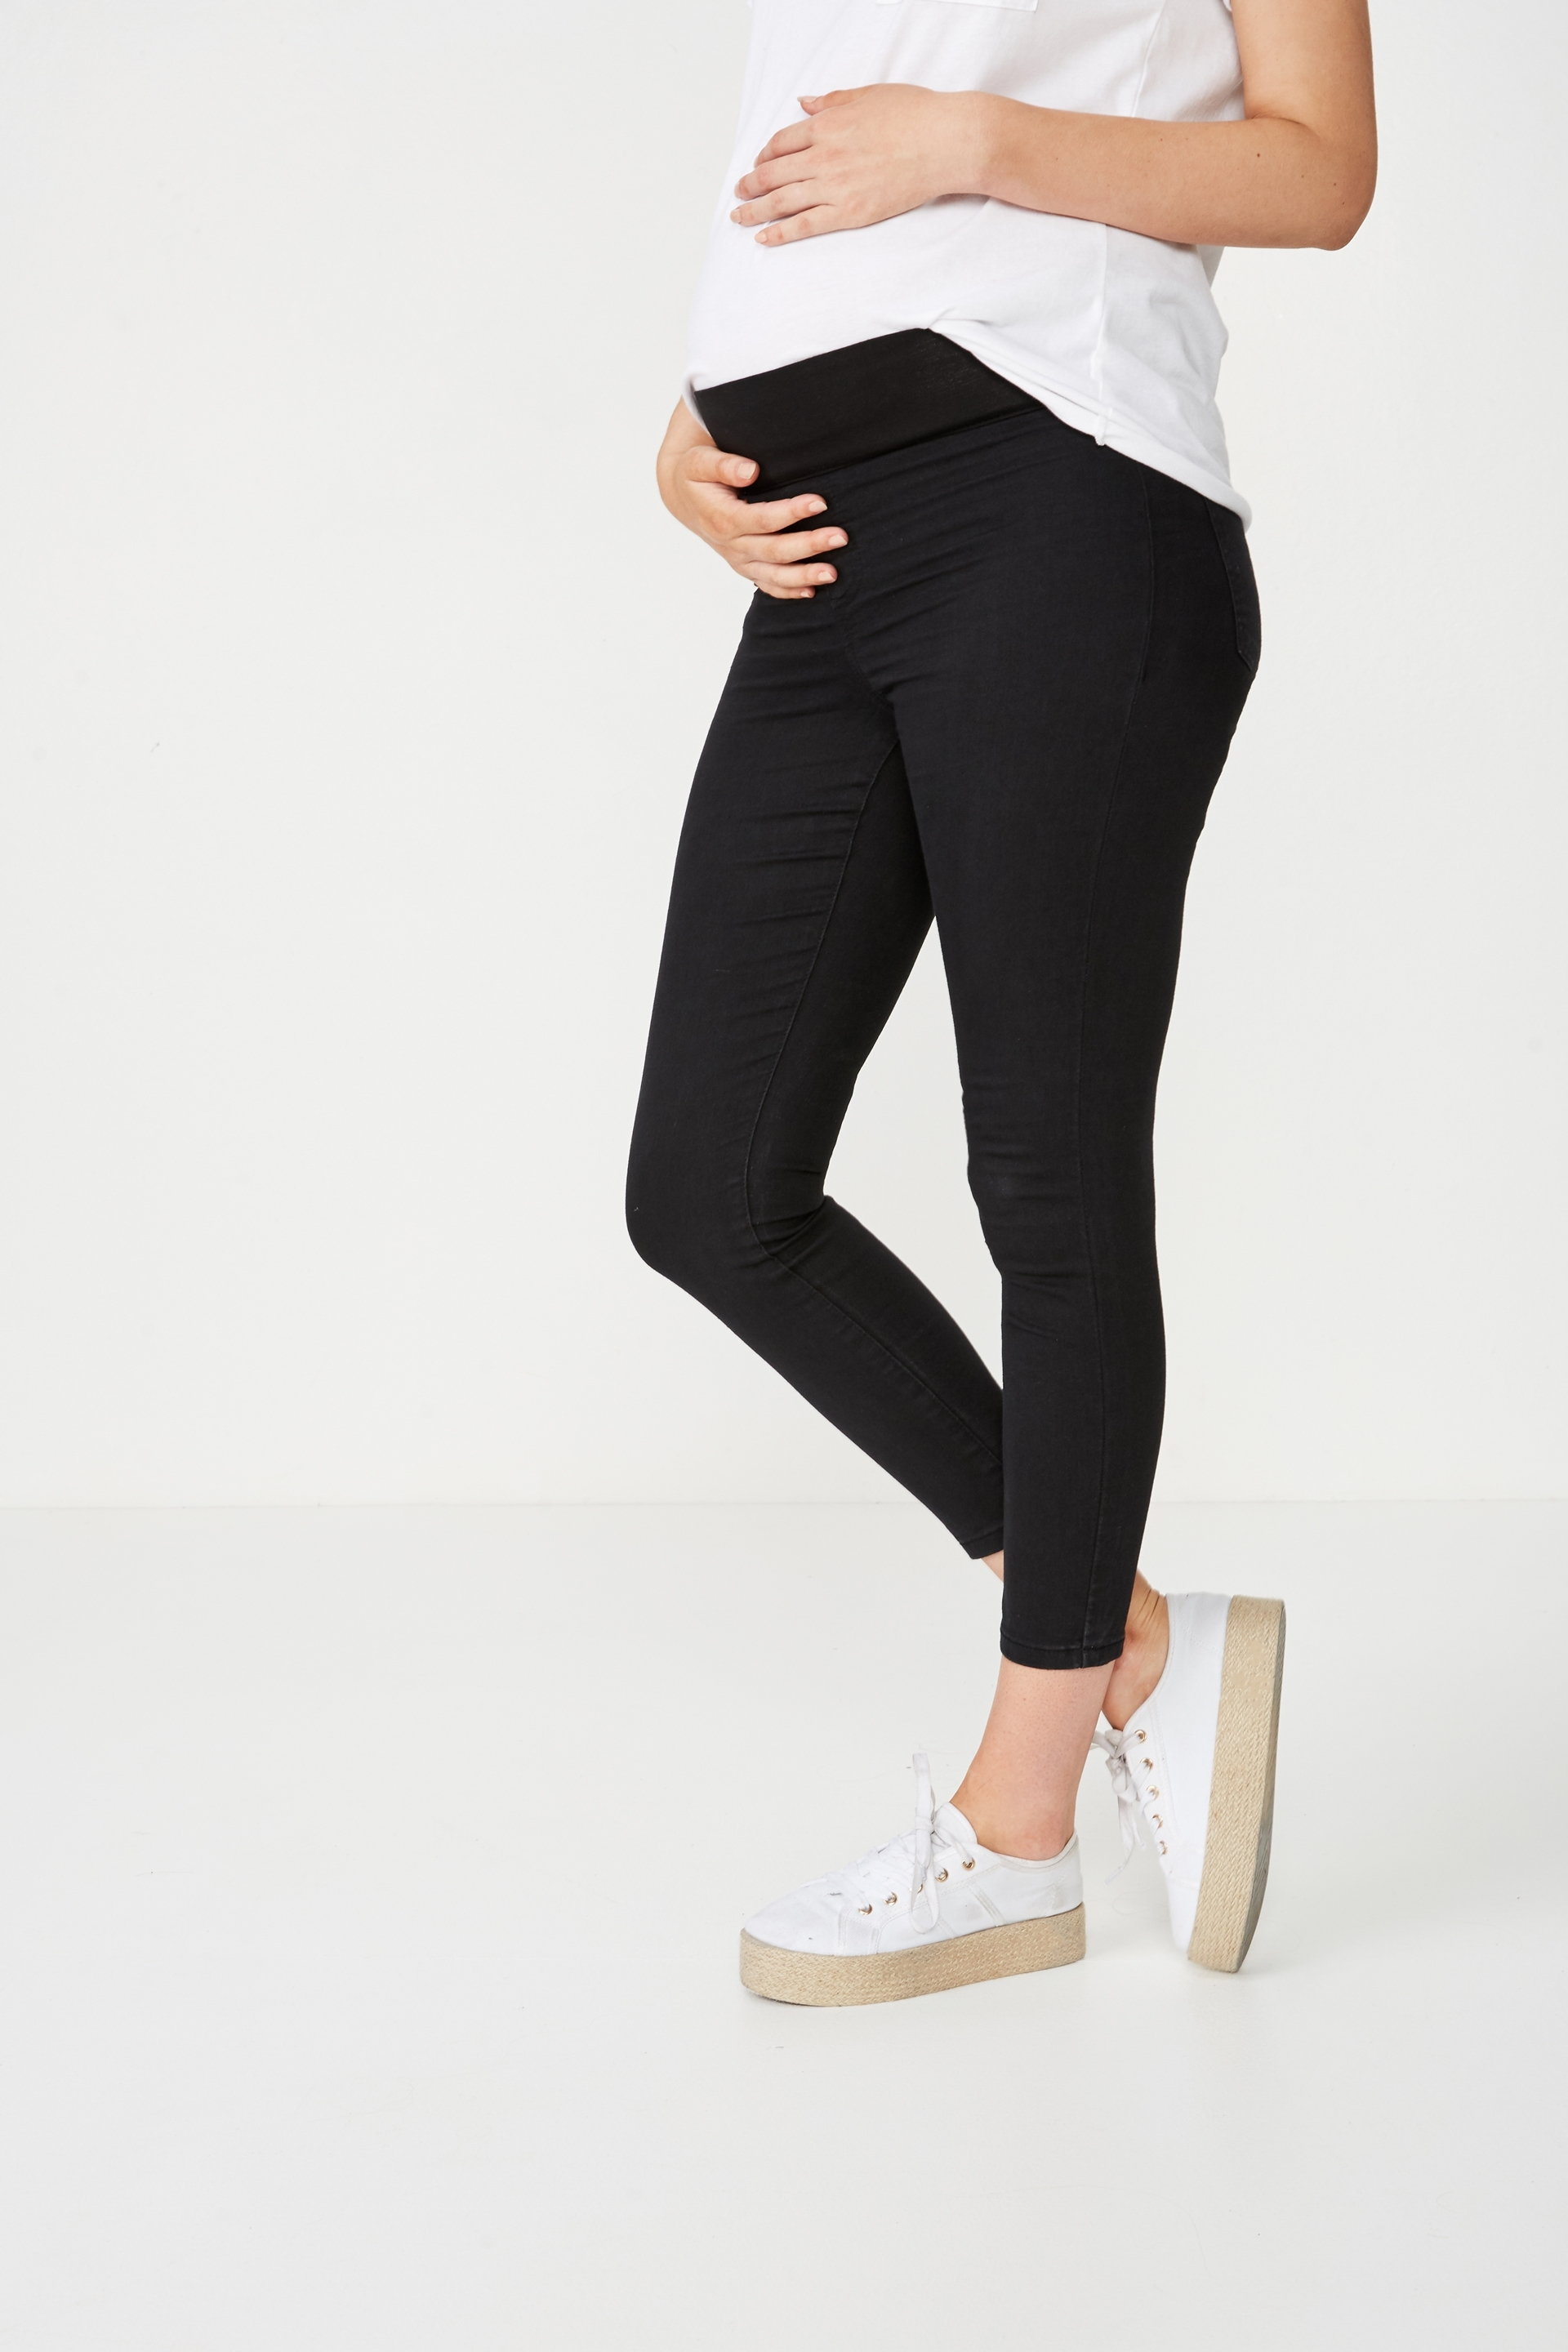 89a3139aa62d6 ... Mid Rise Maternity Jegging, BLACK ...